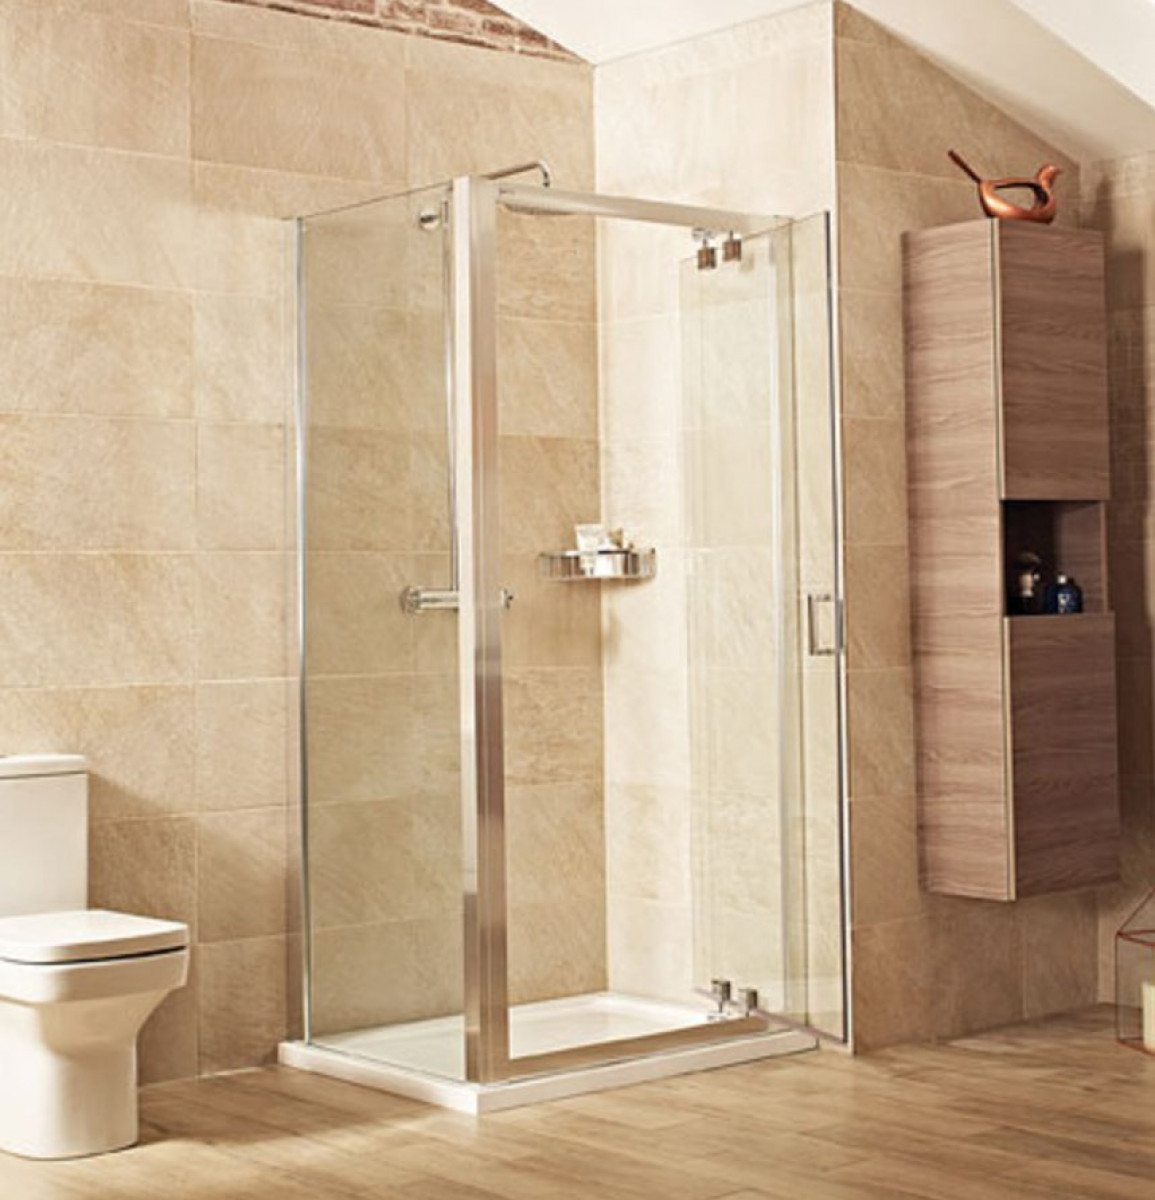 Roman lumin8 1000mm inswing shower door v8k1013s for 1000mm shower door